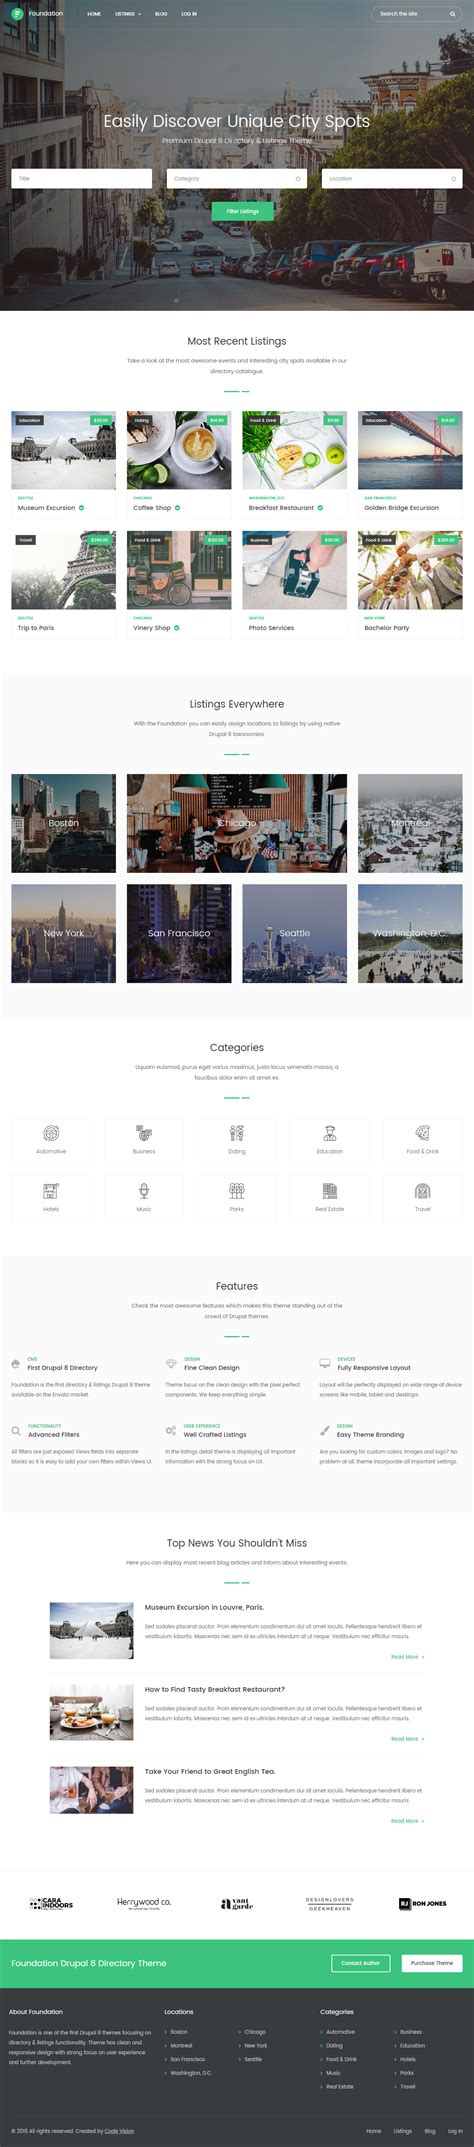 40 Best Drupal 8 Themes And Templates 2017 Responsive Miracle Drupal Custom Theme Template